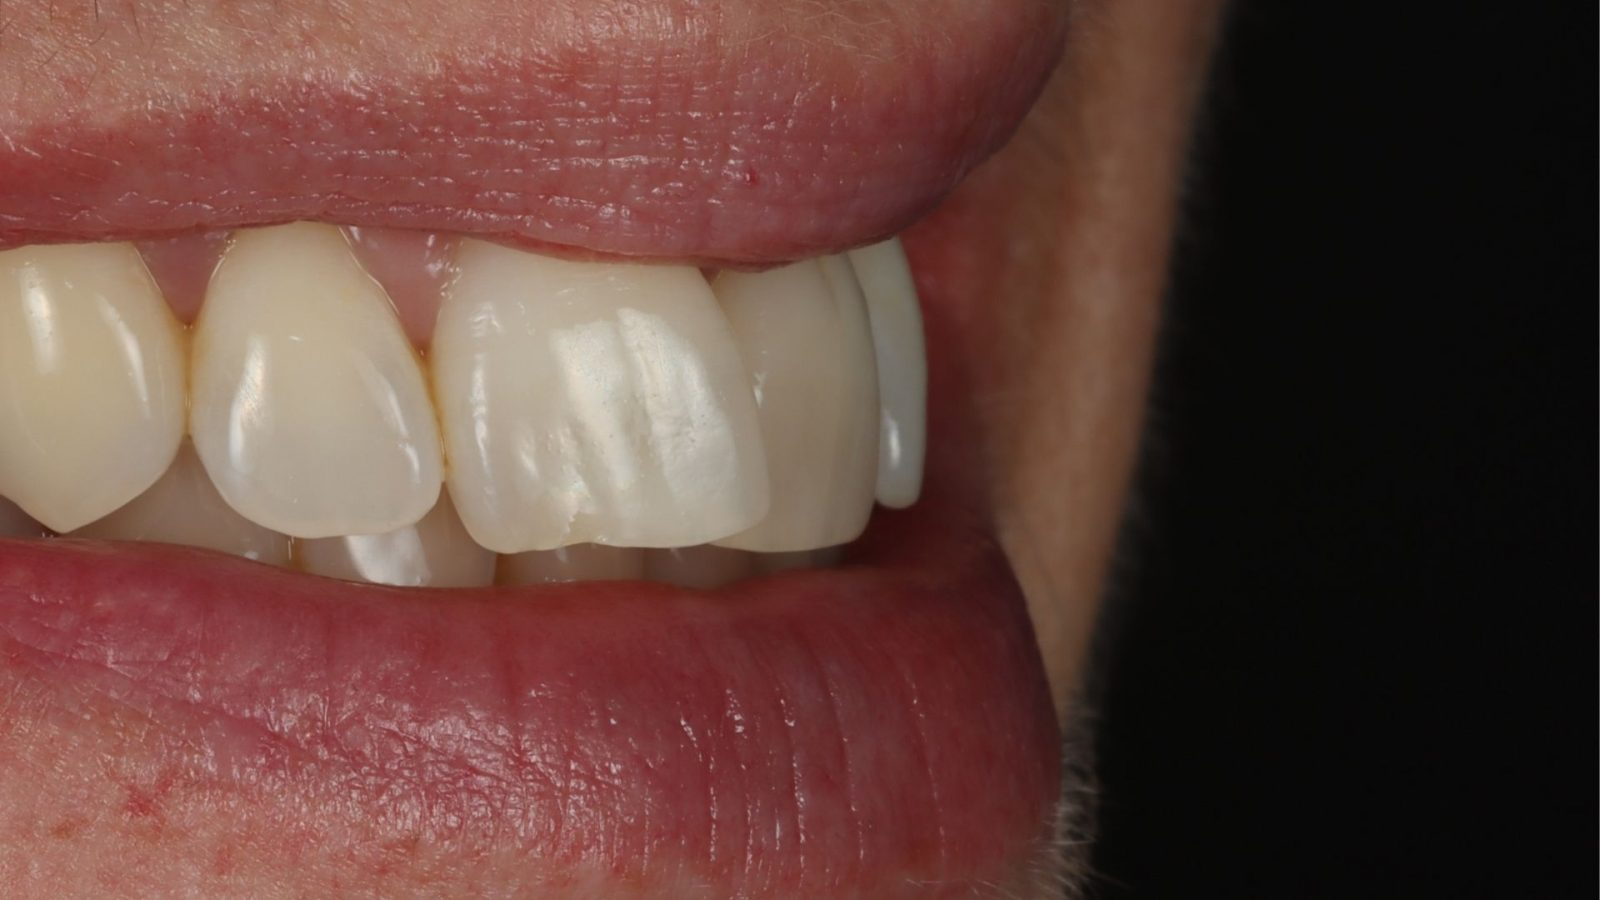 Close up of teeth before Invisalign from the side